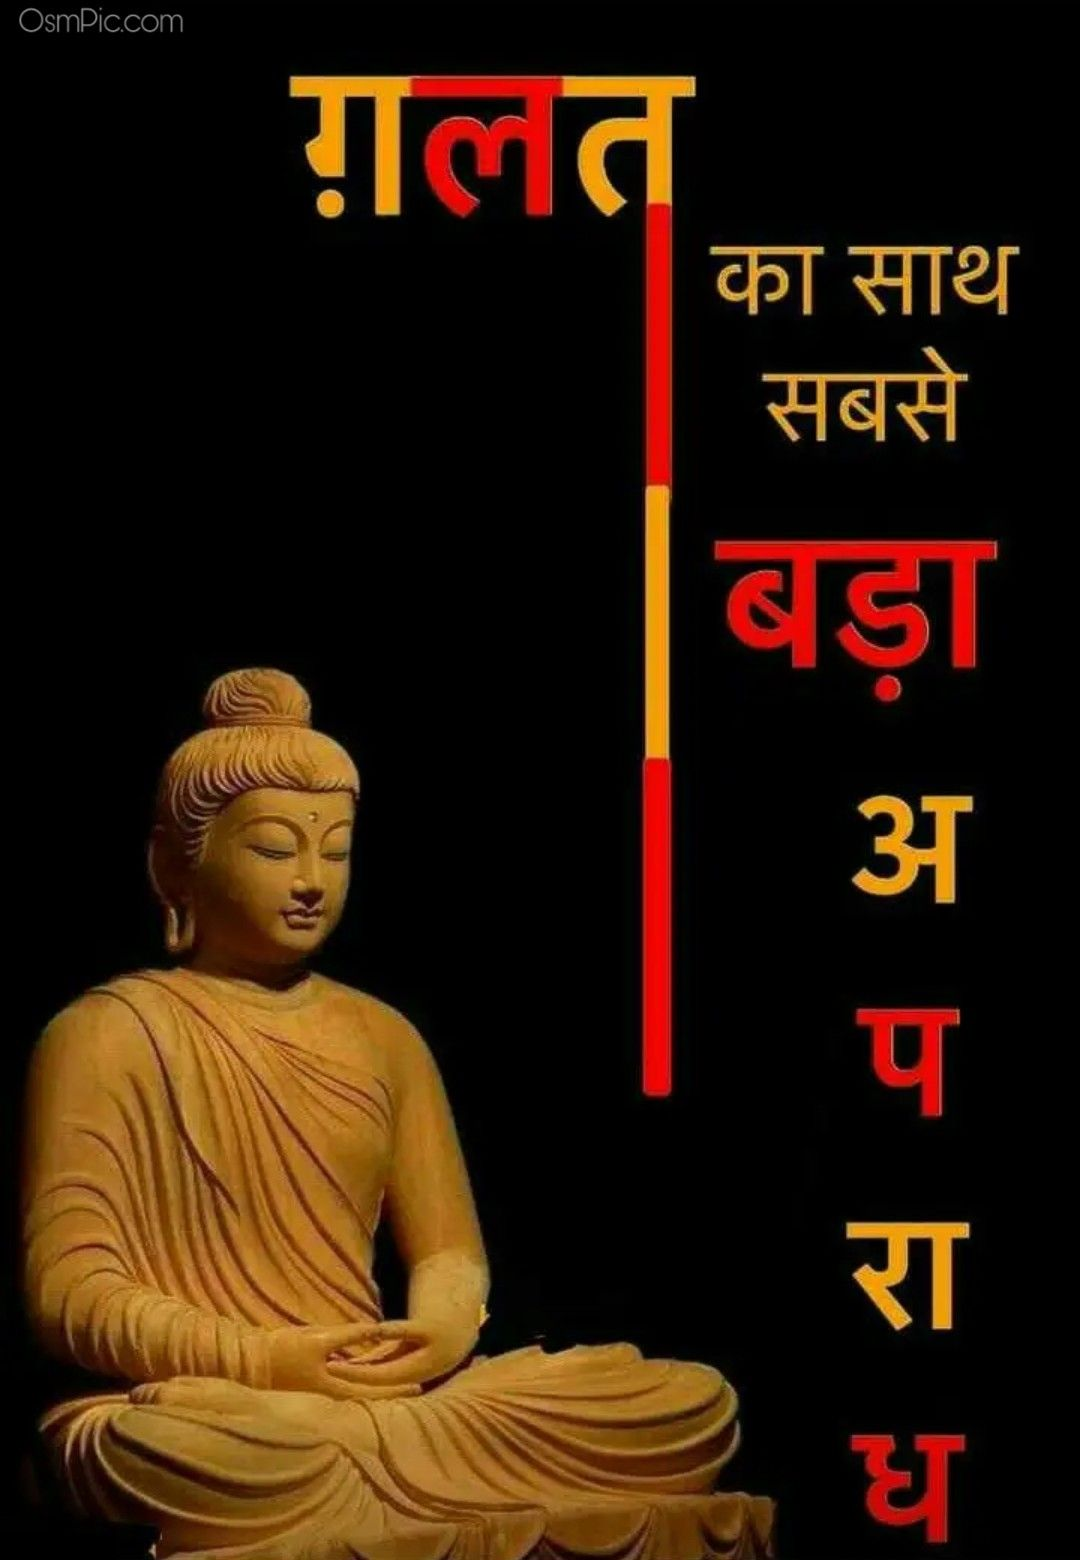 Gautam Buddha Images With Quotes Download Buddha Quotes Life Image Quotes Buddha Quotes Inspirational